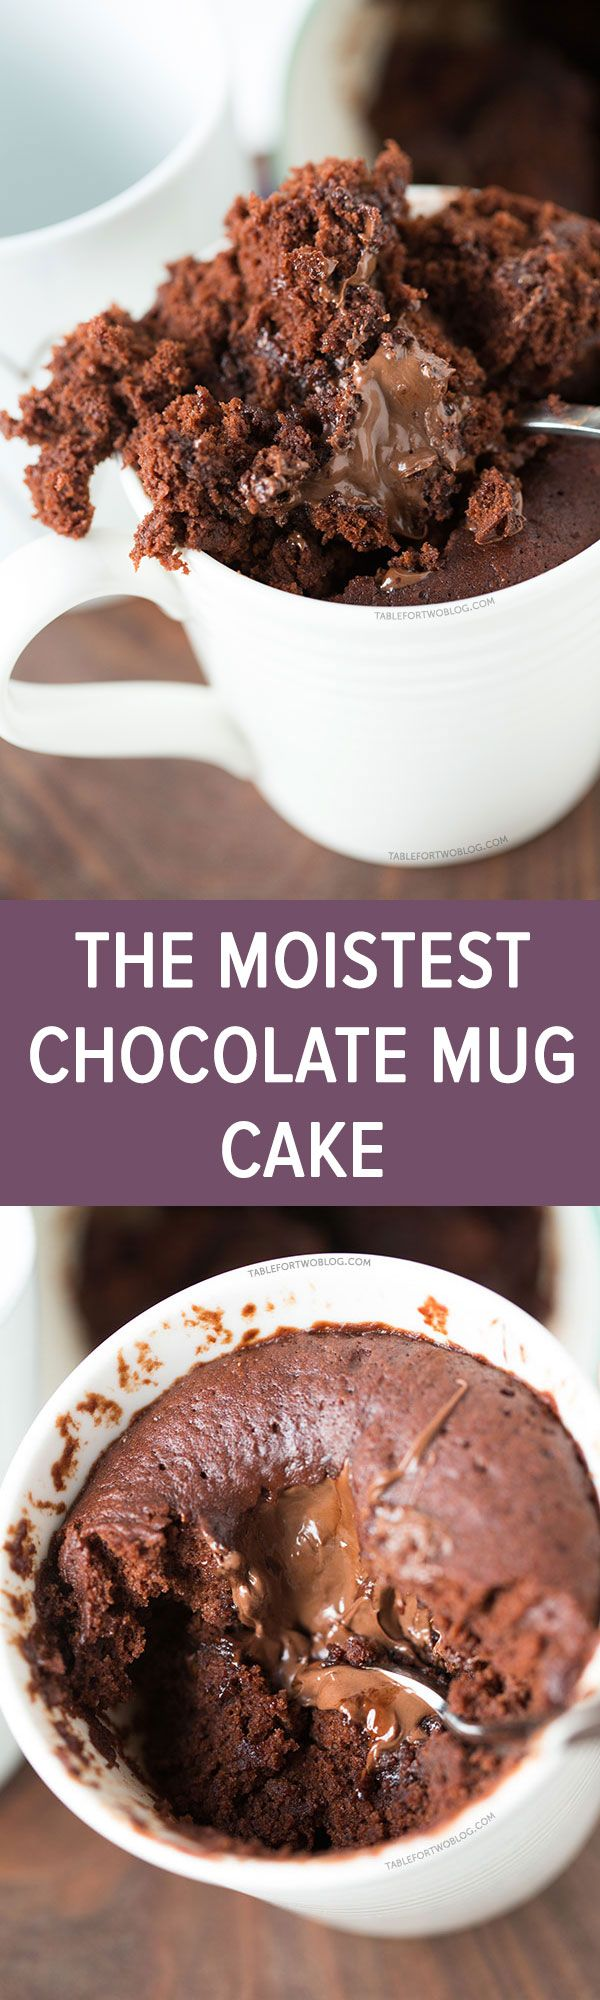 The Moistest Chocolate Mug Cake | Recipe | Chocolate, Cake and Recipes